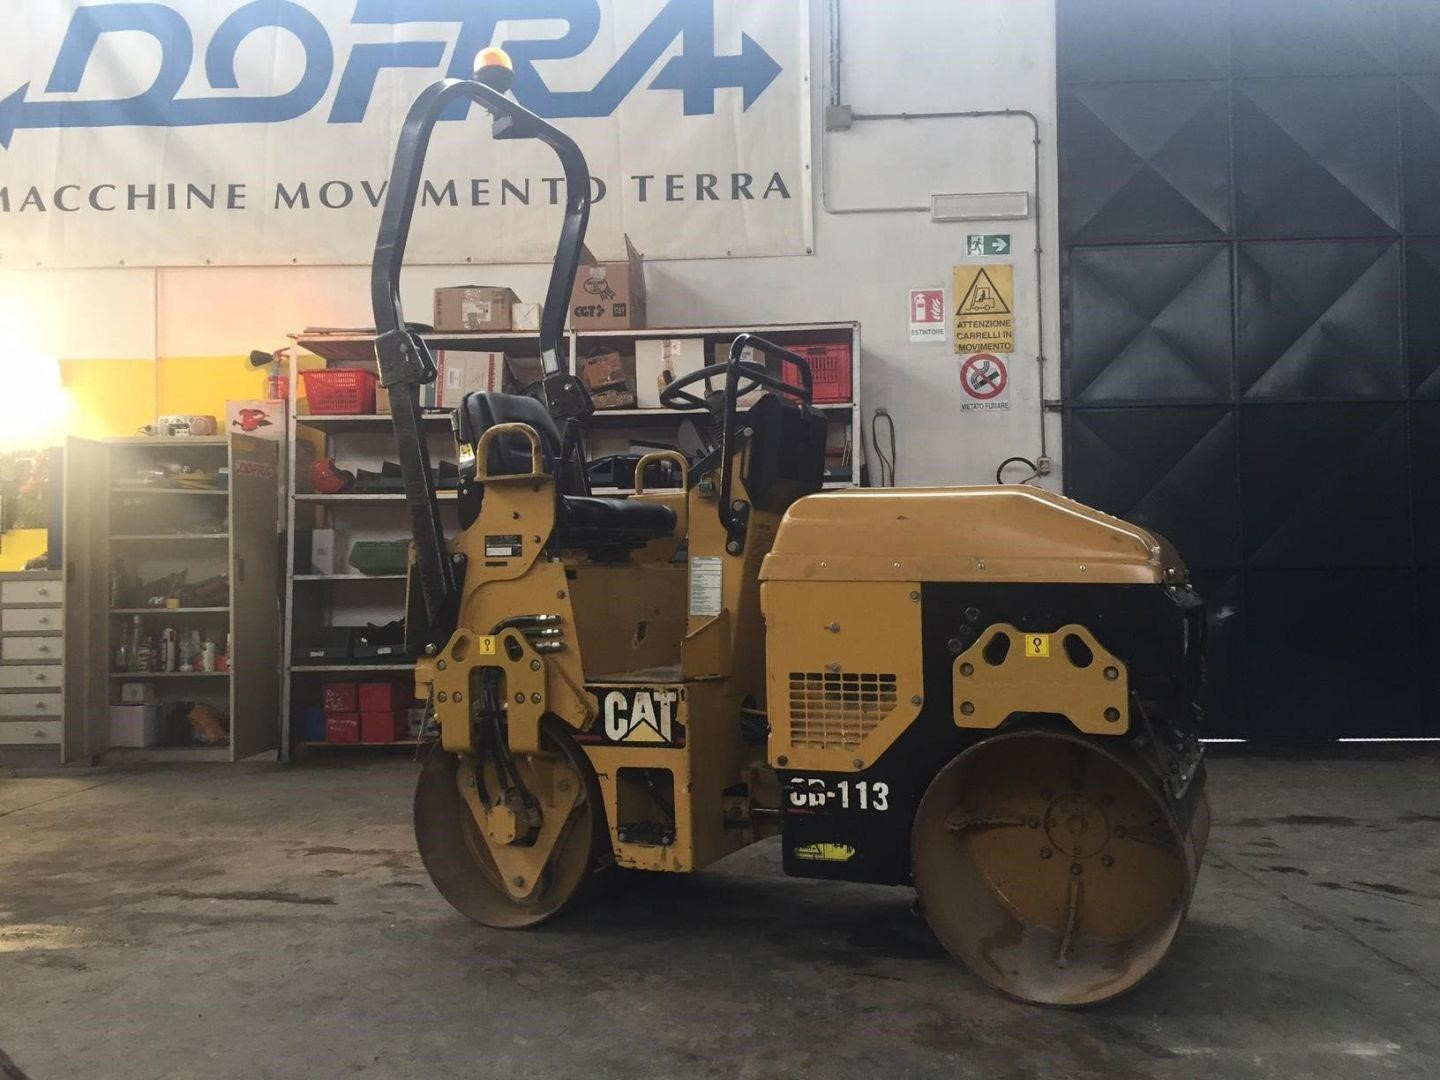 Caterpillar CB-113